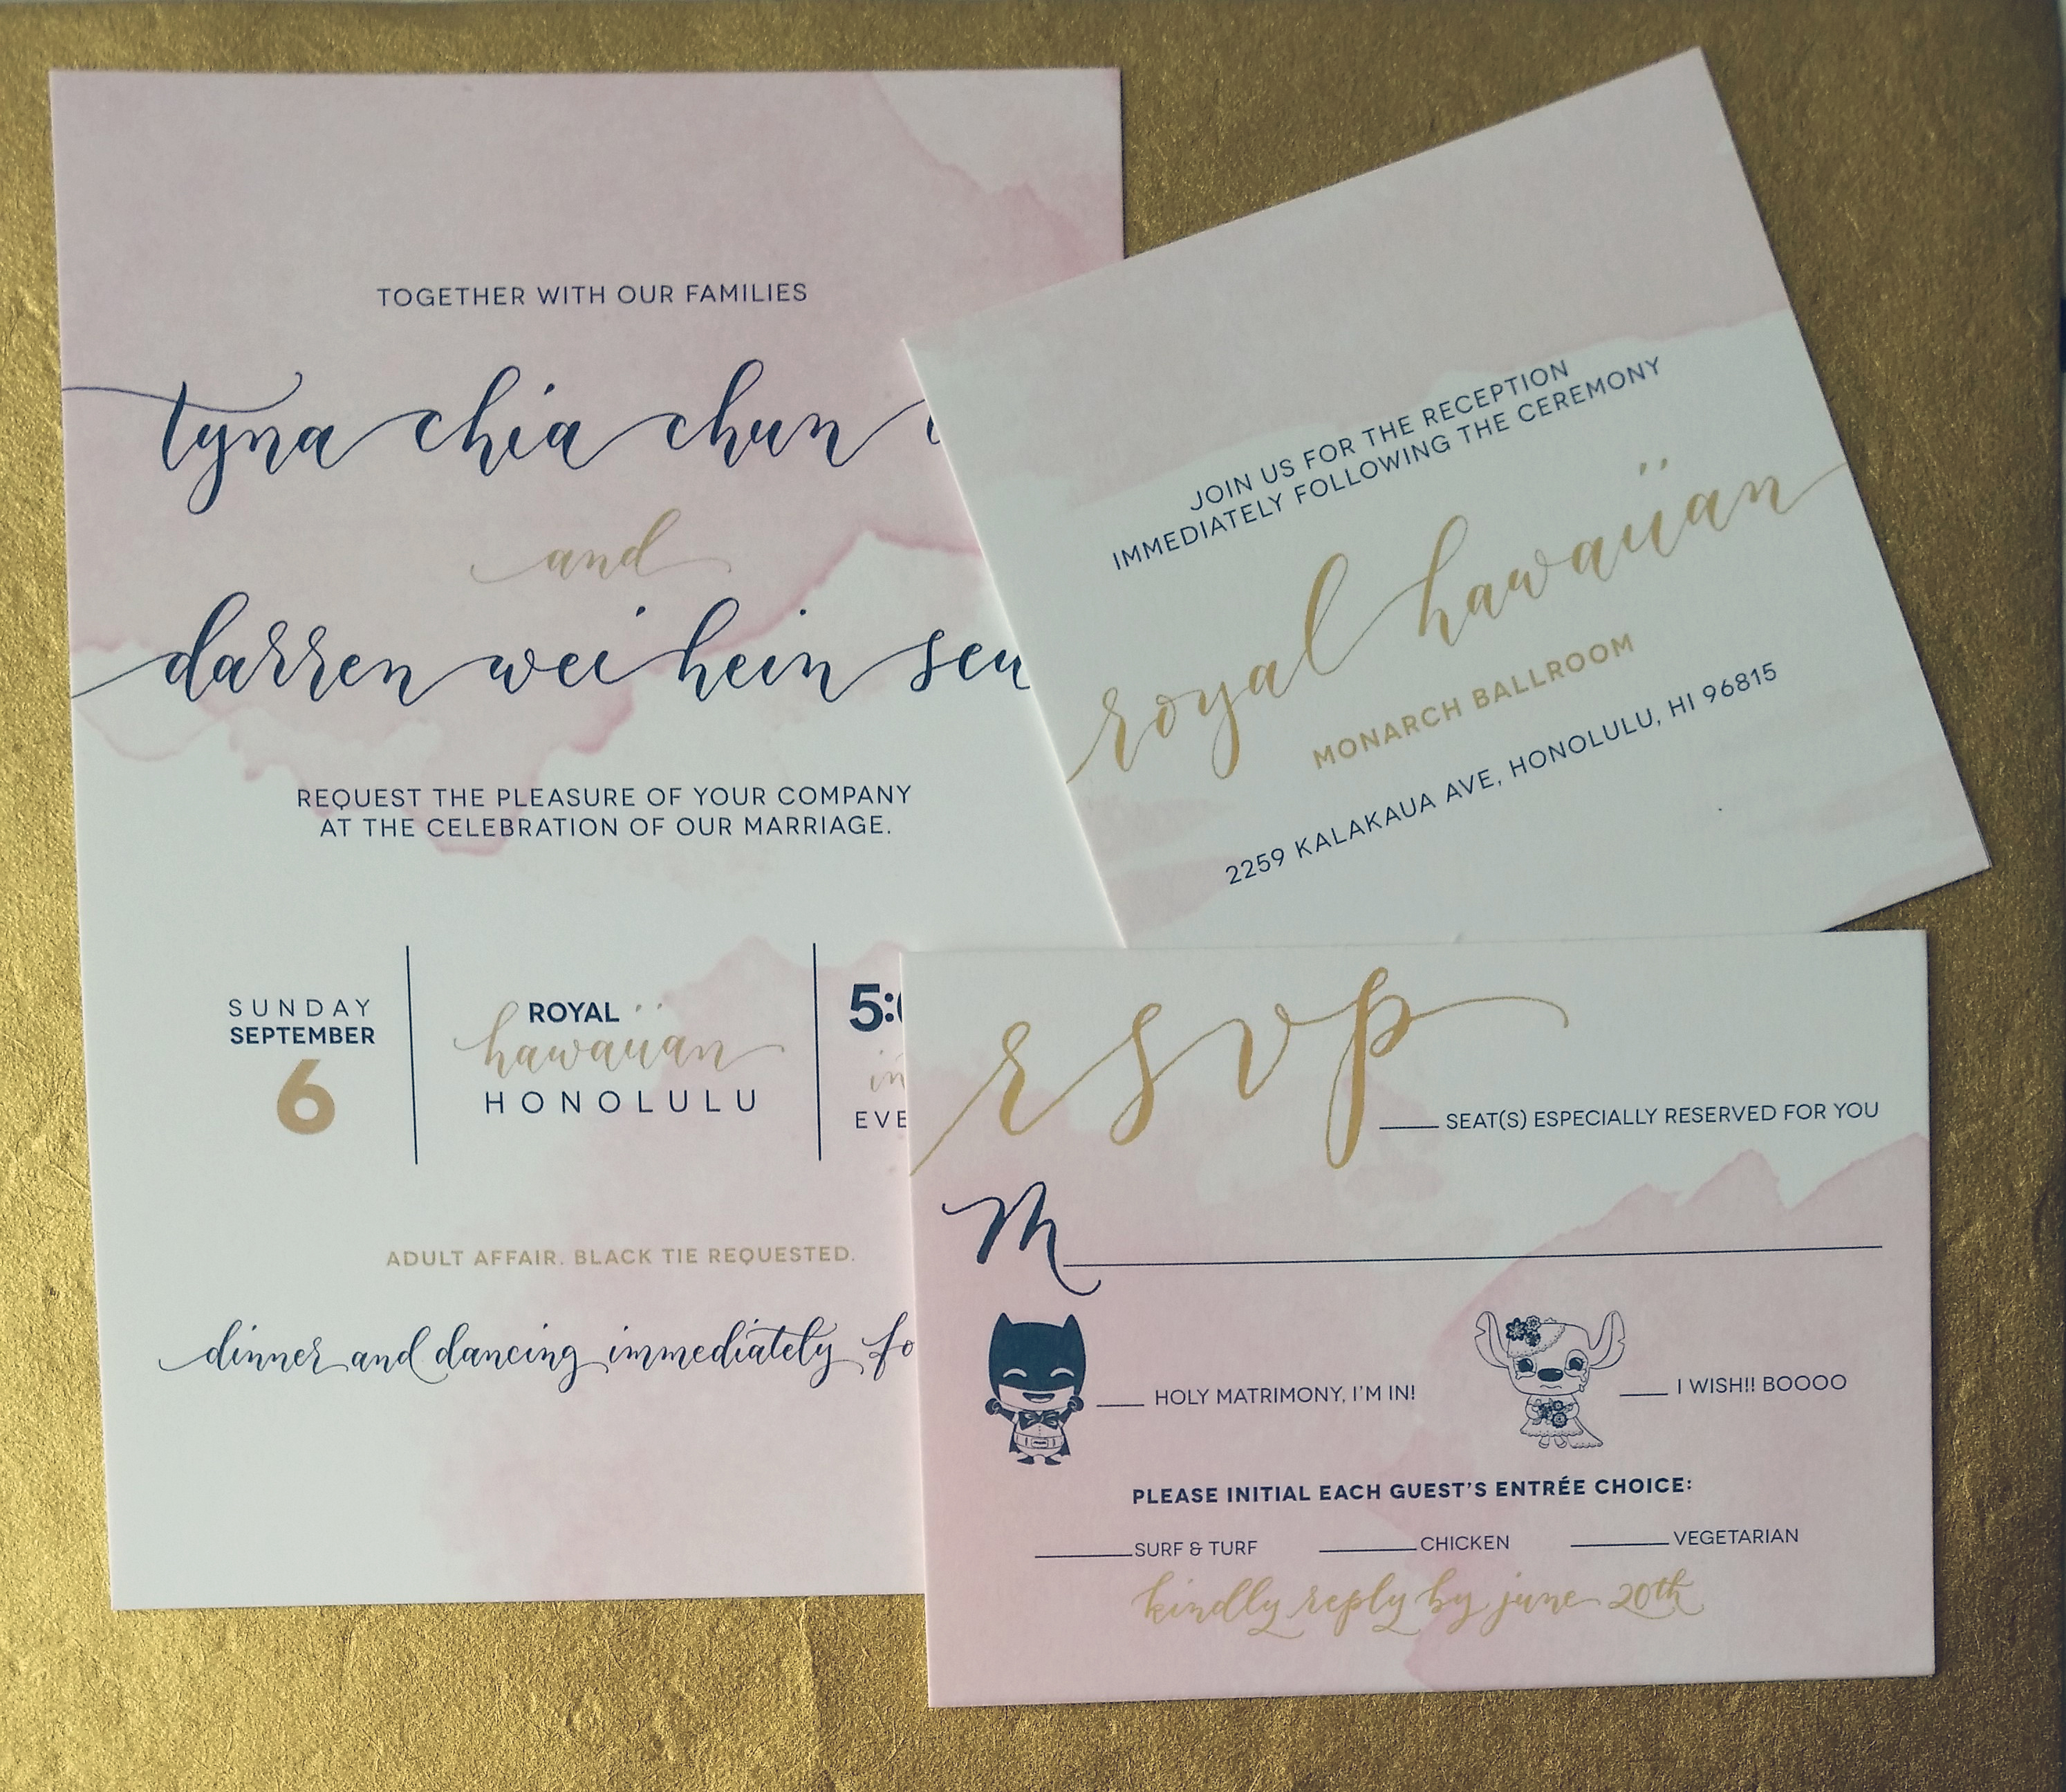 Digital Wedding Invitations. | Locust Street Press